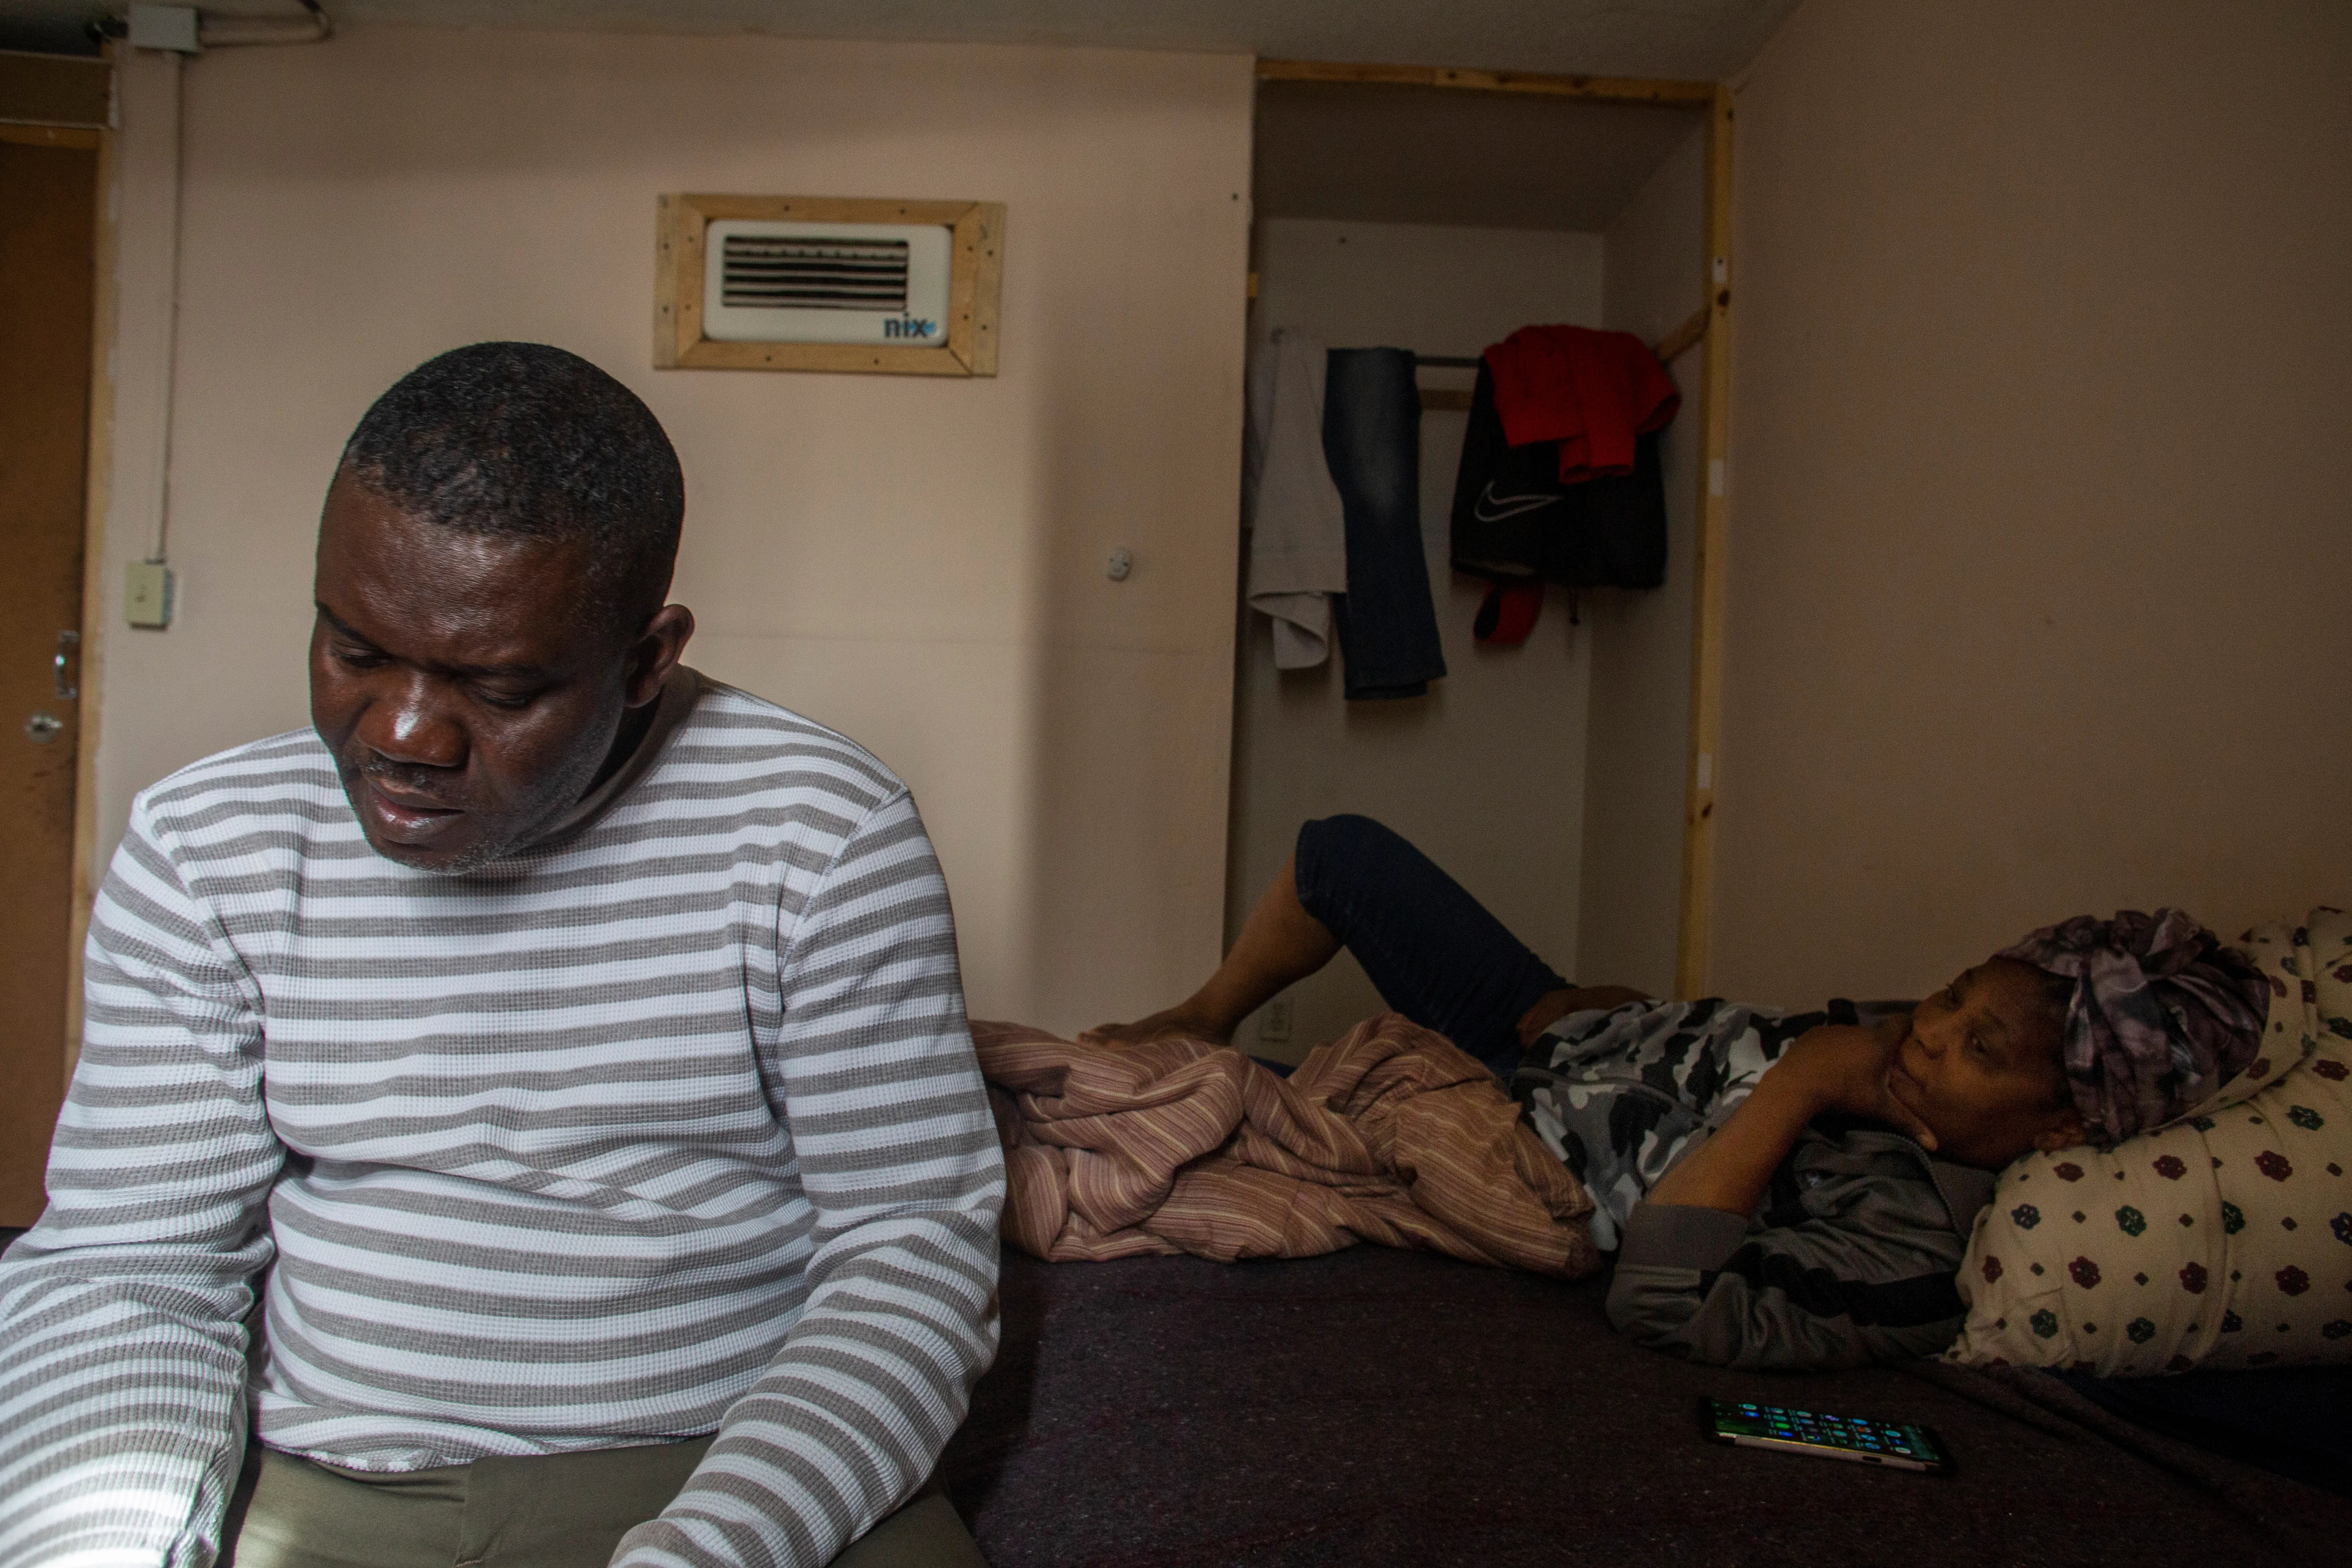 Marie Martine and her husband Fanfan Jean discuss their next options after a failed attempt to be allowed to remain in the U.S. The couple have lived in Mexico for the last five years in Tijuana.